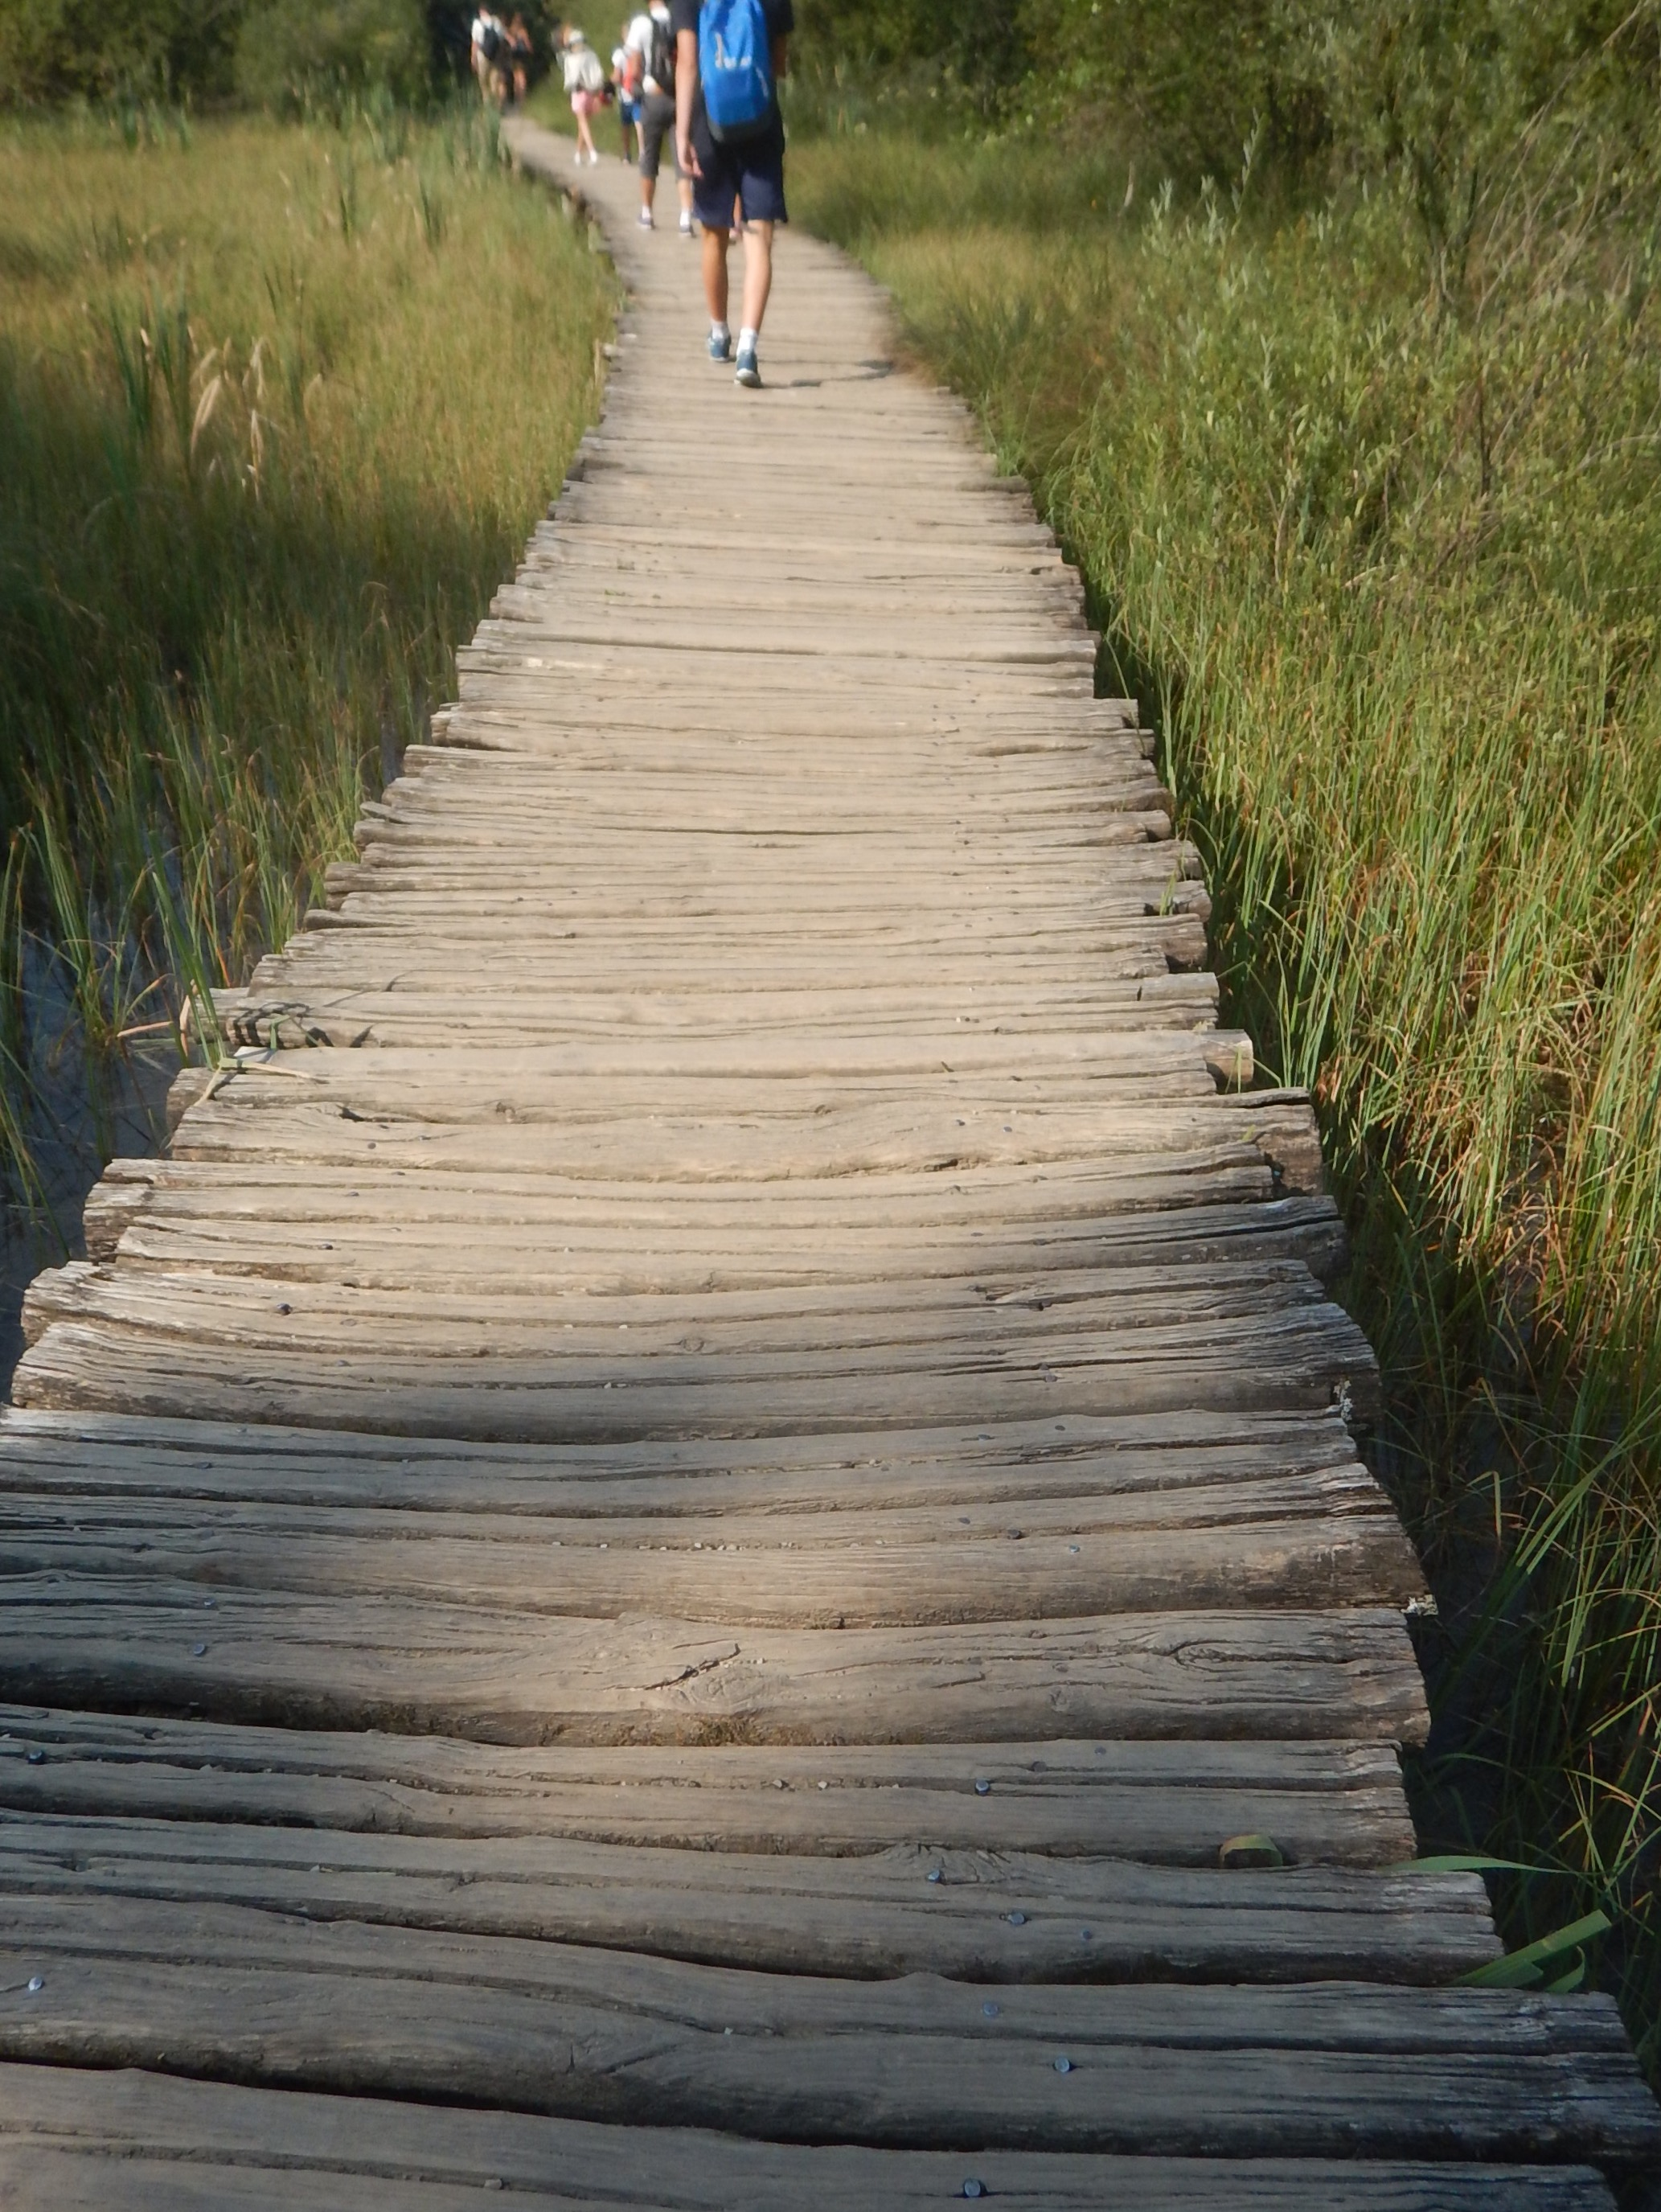 Most of the boardwalks are fairly dated!